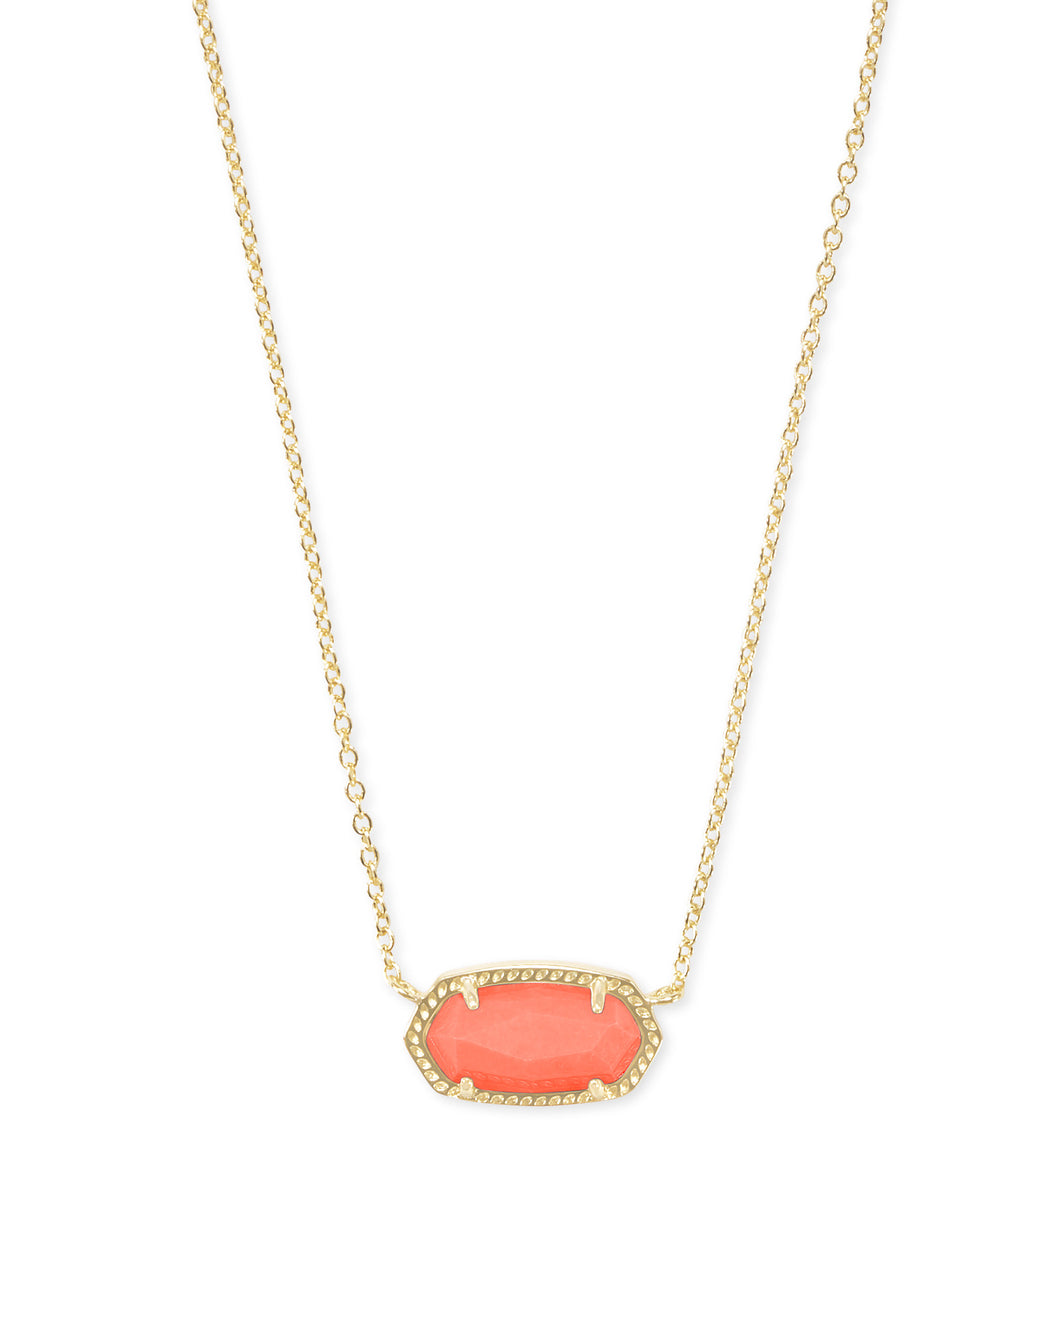 Kendra Scott Elisa Necklace in Bright Coral